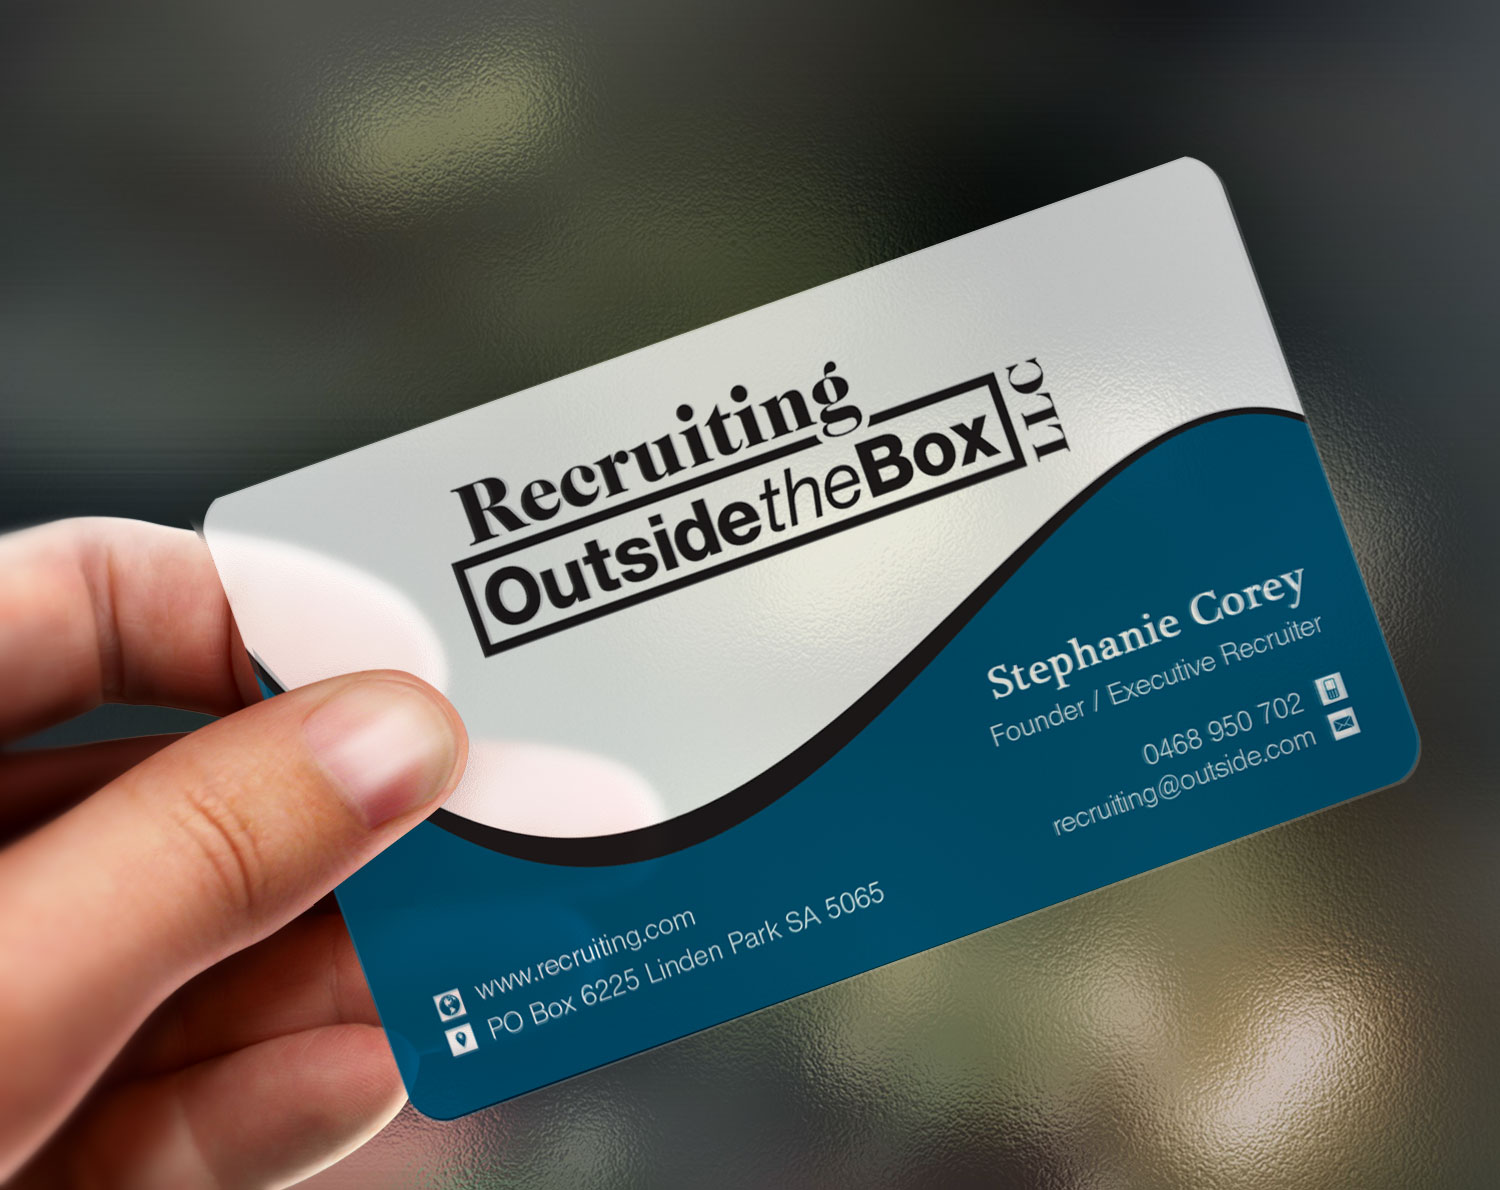 Business business card design for recruiting outside the box llc by business business card design for recruiting outside the box llc in united states design 10376345 colourmoves